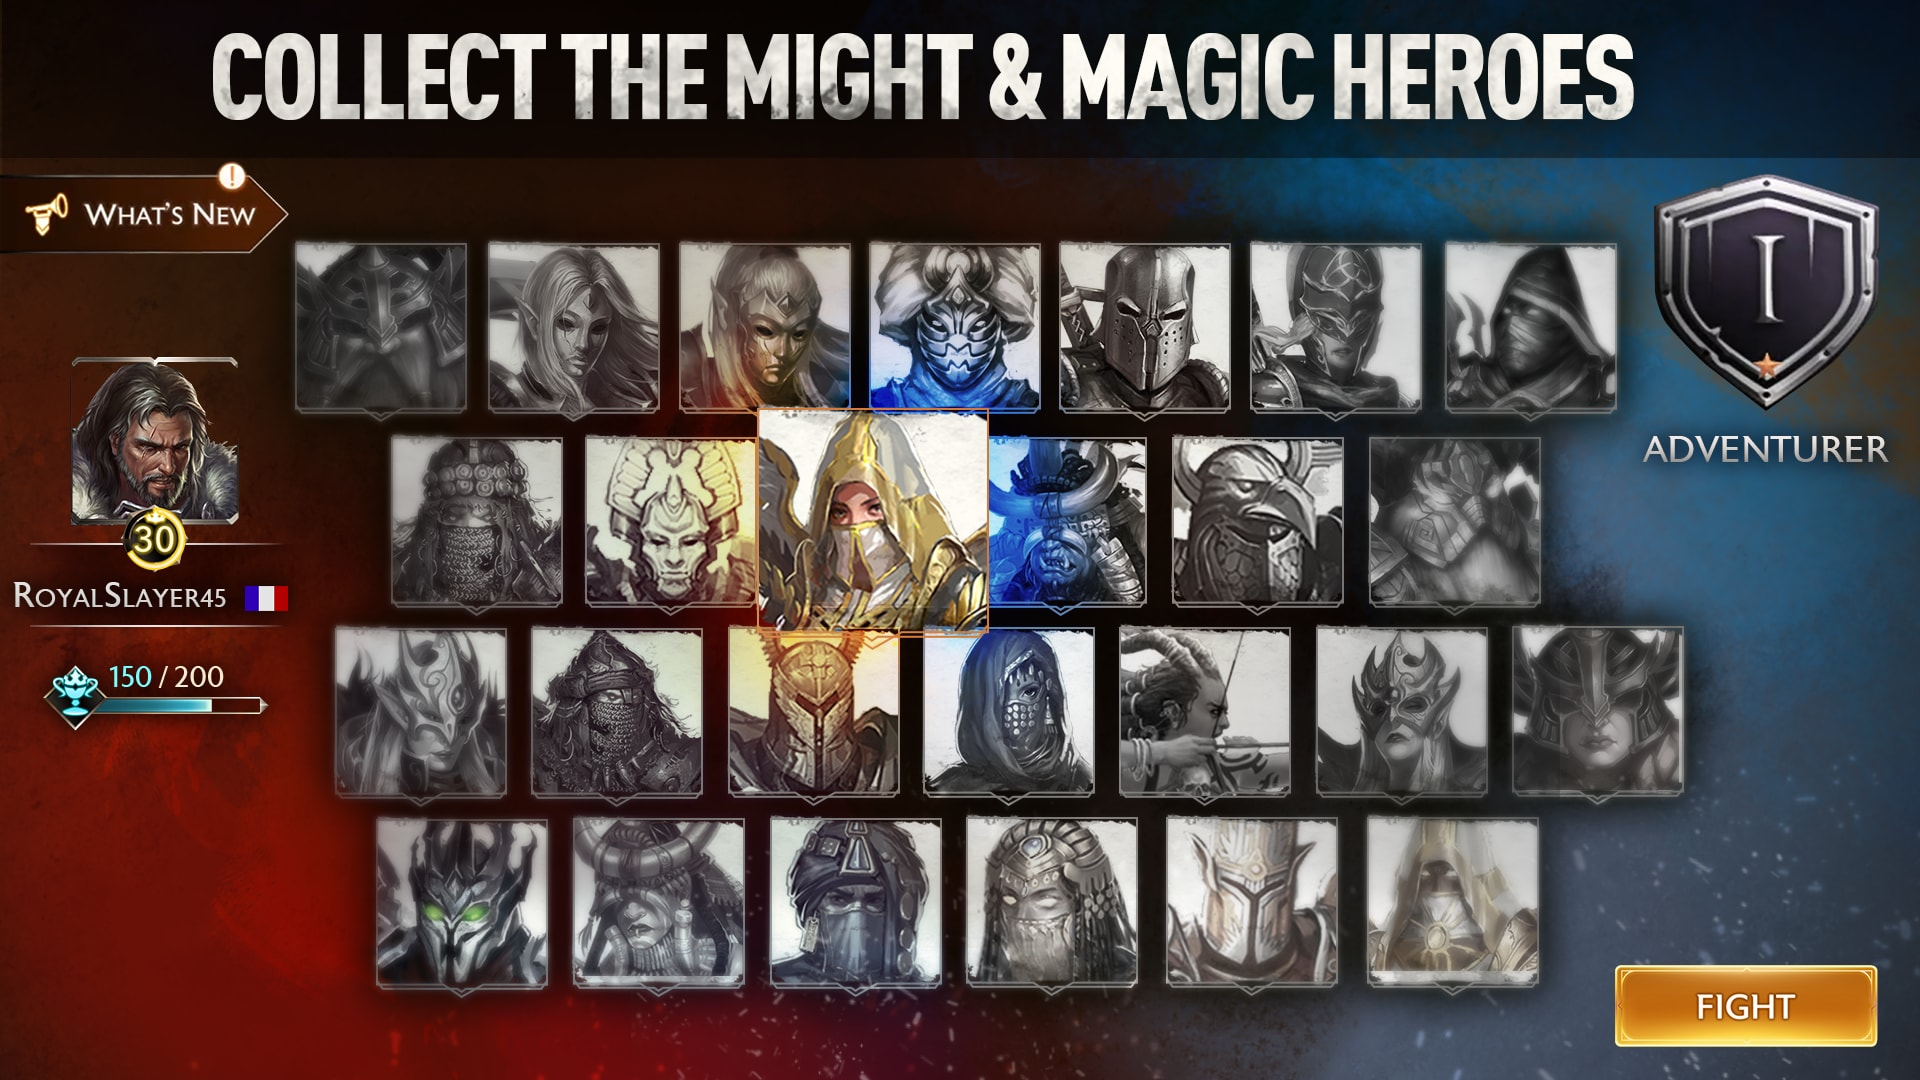 04_THE_MIGHT___MAGIC_HEROES